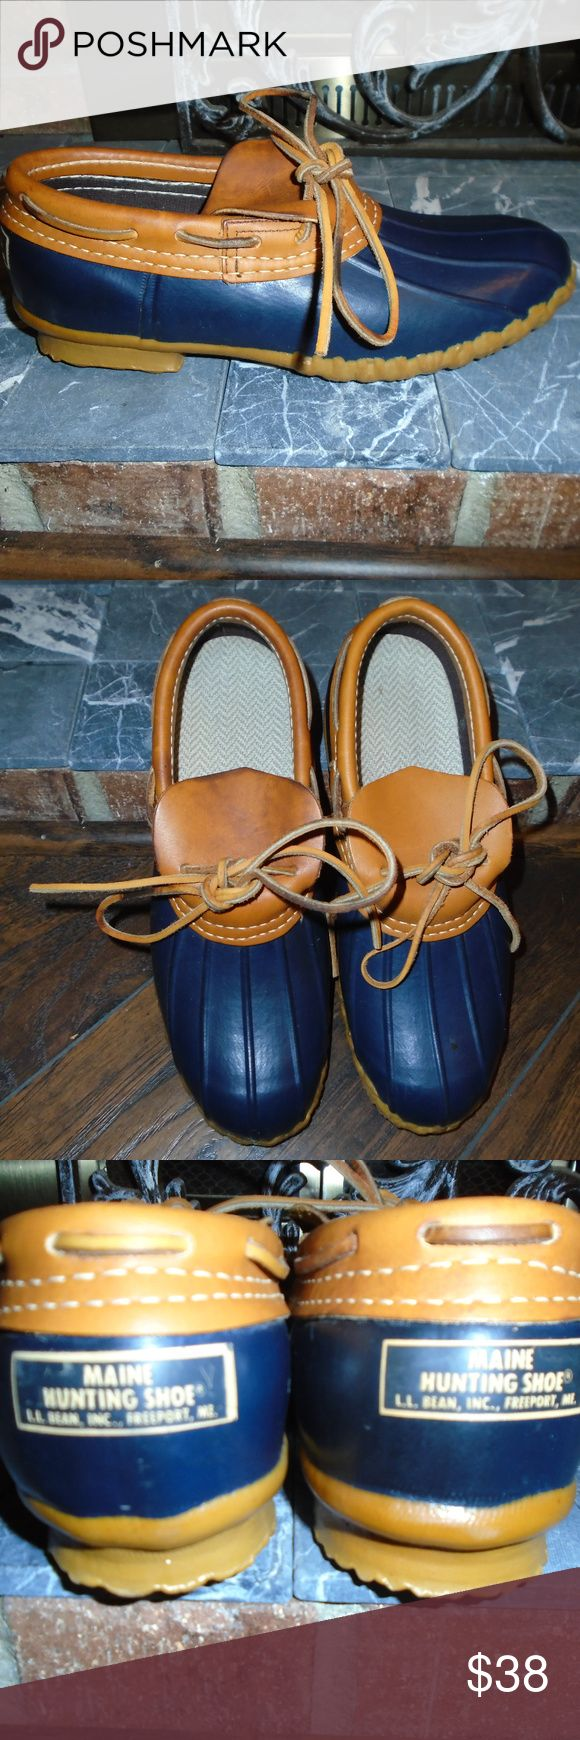 L.L. BEAN MOC BOOTS ~ 9 ~ POPULAR STYLE!!!! L.L. BEAN moc style boots/shoes ~ size 9 ladies Navy color with leather detail Comfortable cushioned inserts Logo detail on the back Detailed rubber sole Good condition with normal wear L.L. Bean Shoes Ankle Boots & Booties